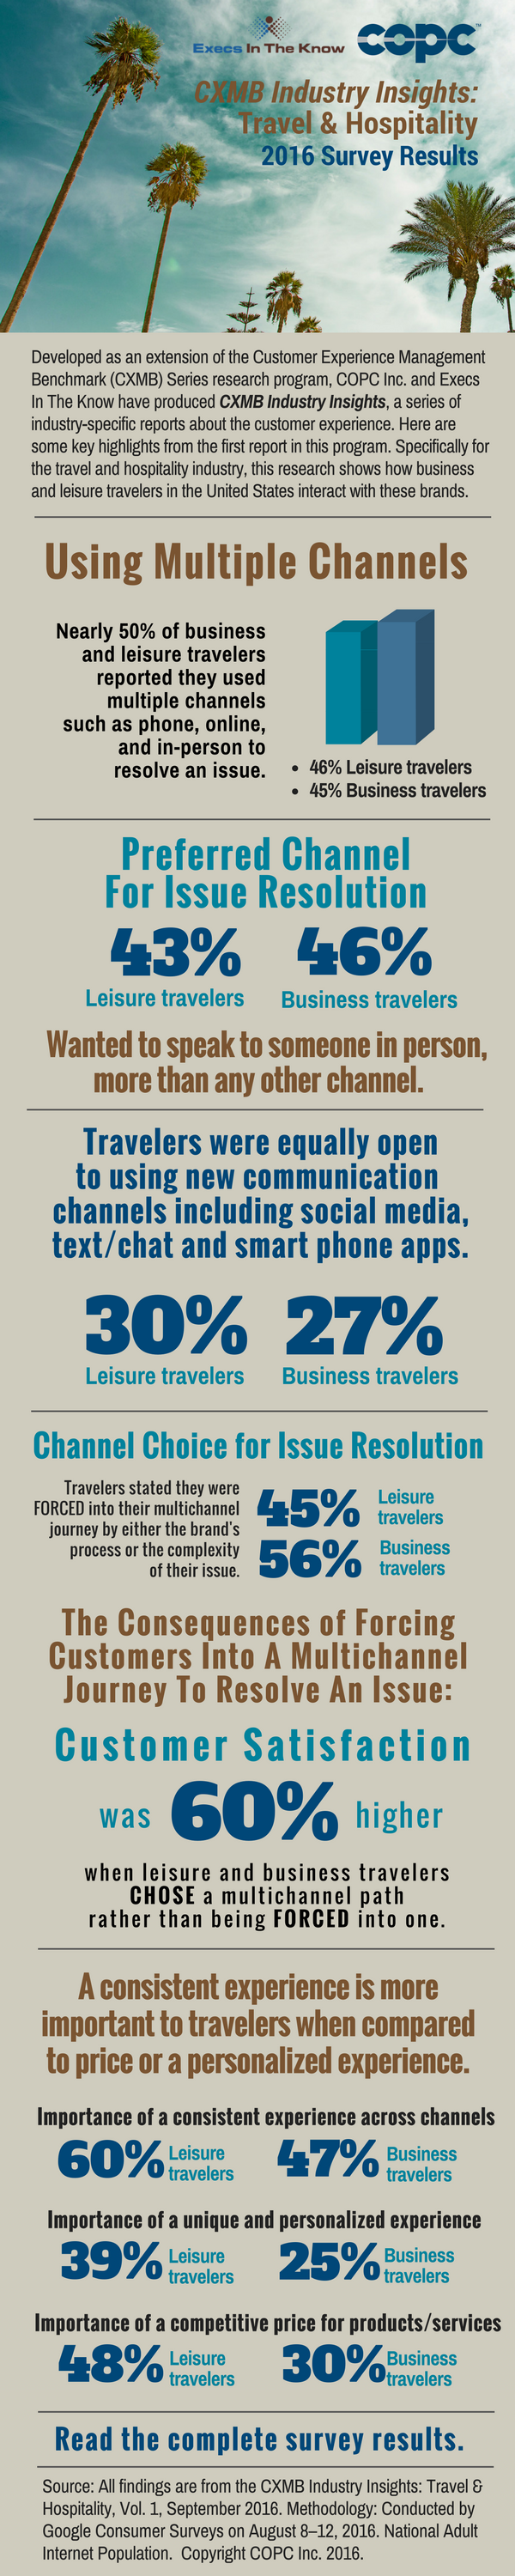 travel-survey-infographic-nov-2016-final